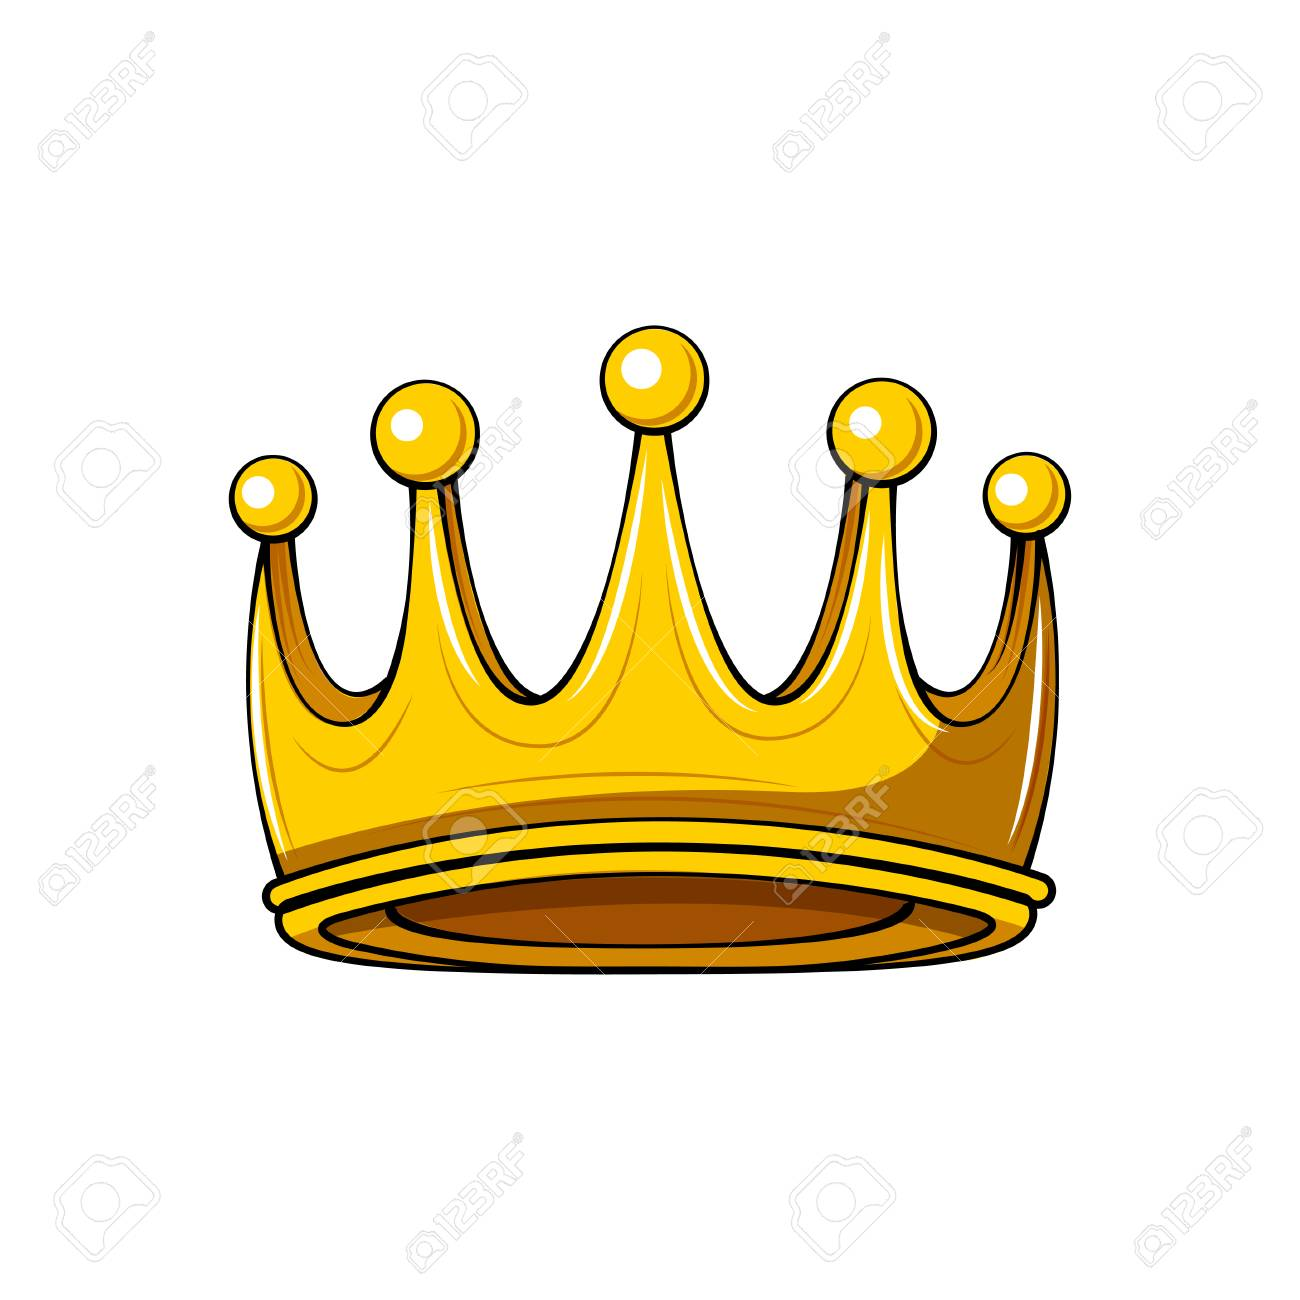 Golden Cartoon Crown Royal Badge King Symbol Queen Sign Design Royalty Free Cliparts Vectors And Stock Illustration Image 103665059 Crown cartoon stock photos and images. golden cartoon crown royal badge king symbol queen sign design